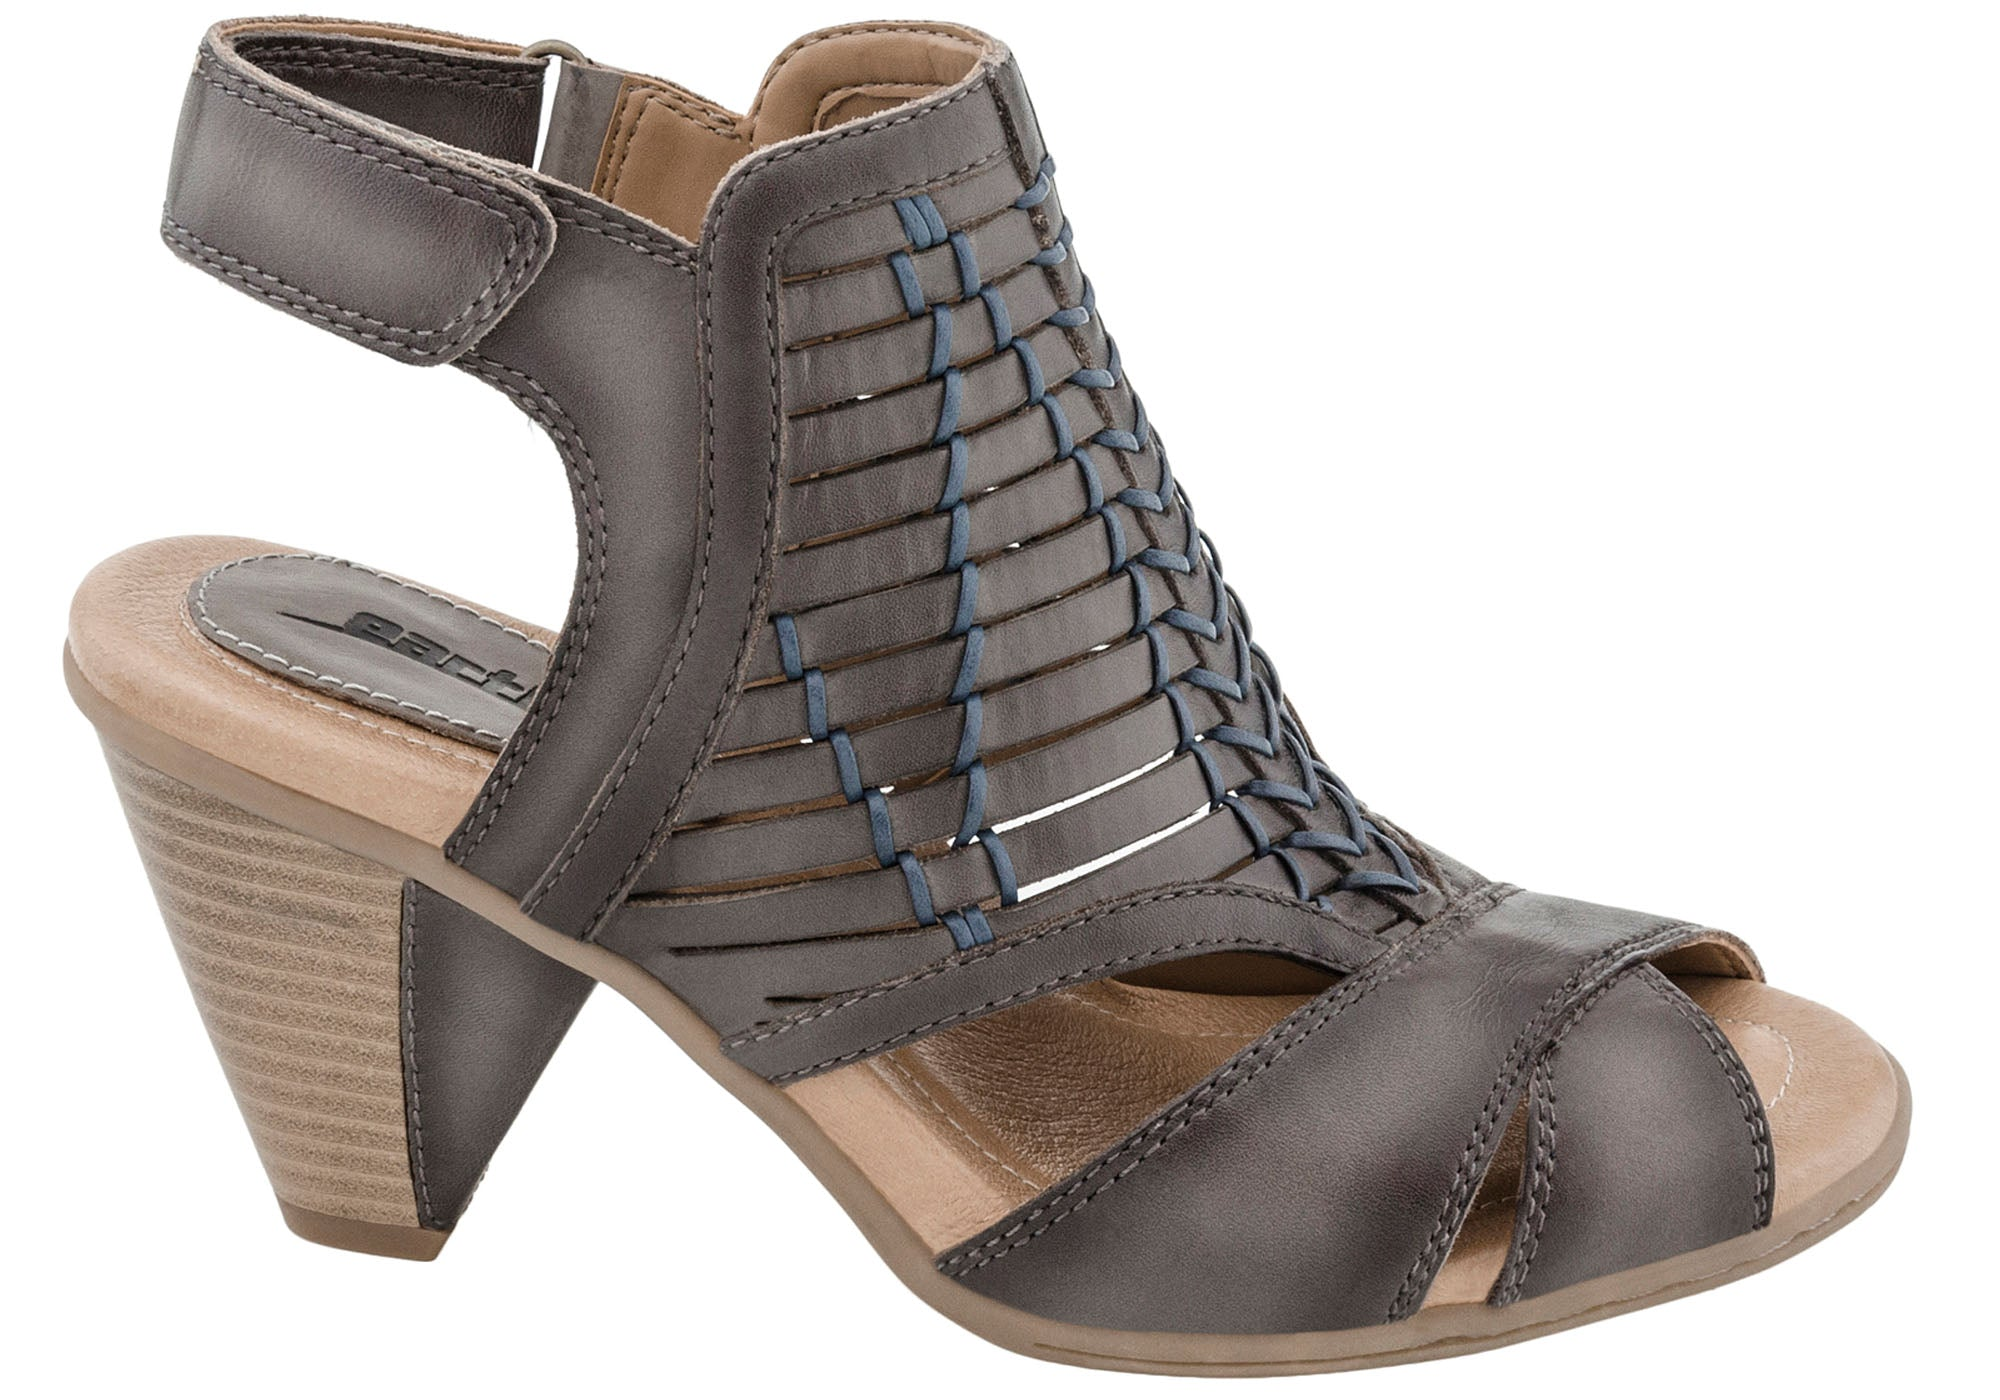 8946c0166d Earth Libra Womens Comfortable Leather Mid Heel Sandals | Brand ...